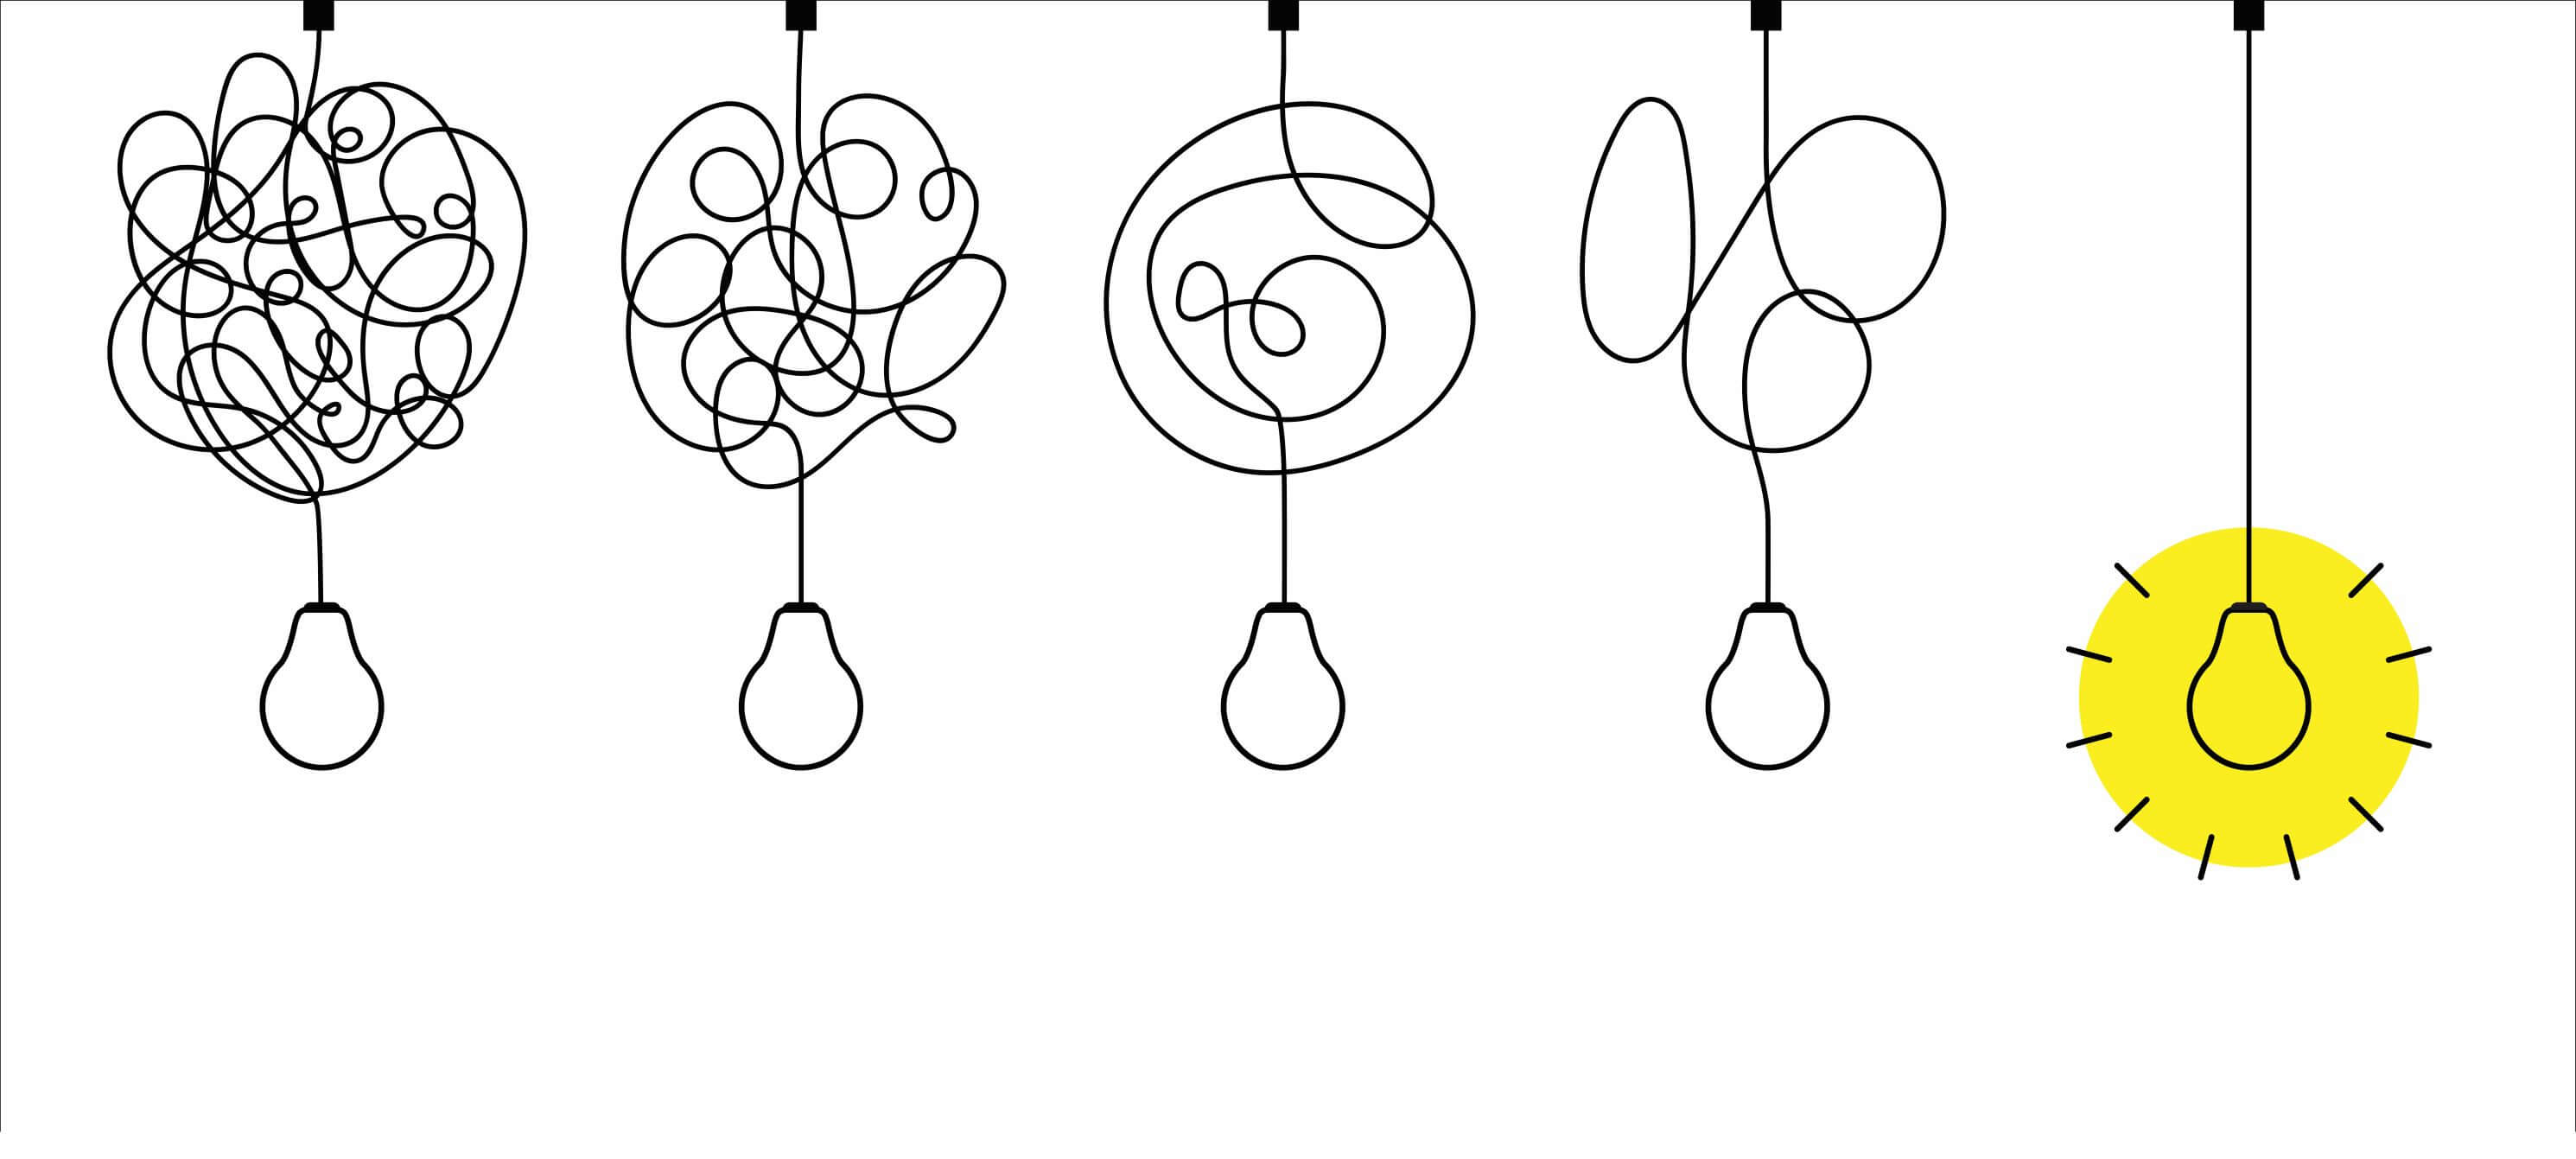 4 lightbulbs with jumbled cords becoming gradually untangled and one lightbulb with a straight cord highlighted in yellow